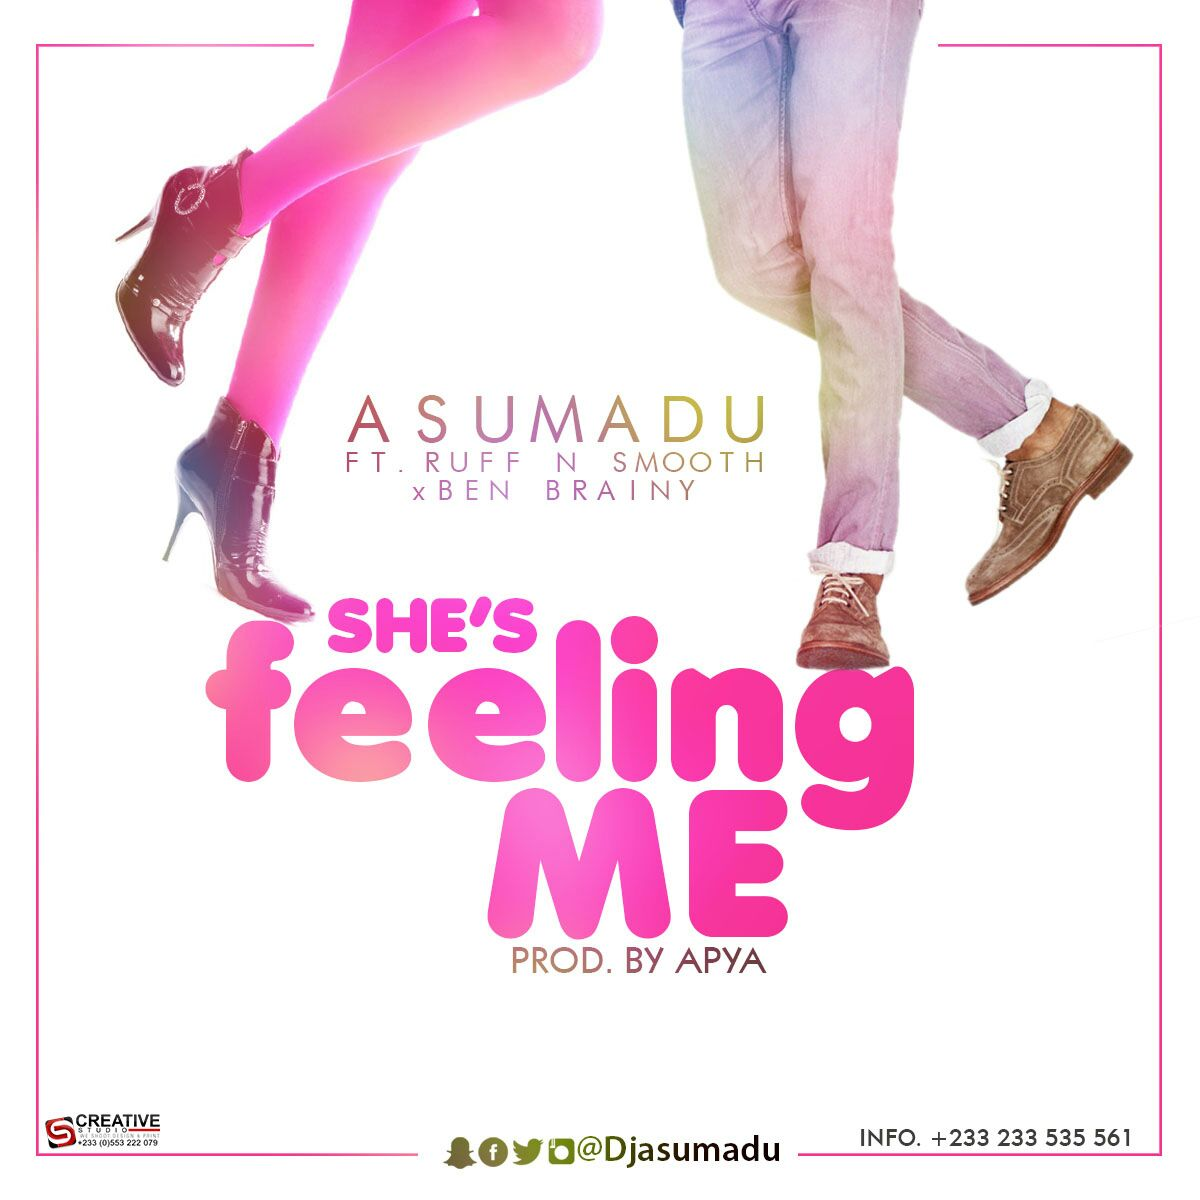 Asumadu - She's Feeling Me ft Ruff N Smooth x Ben Brainy (Prod by Apya)